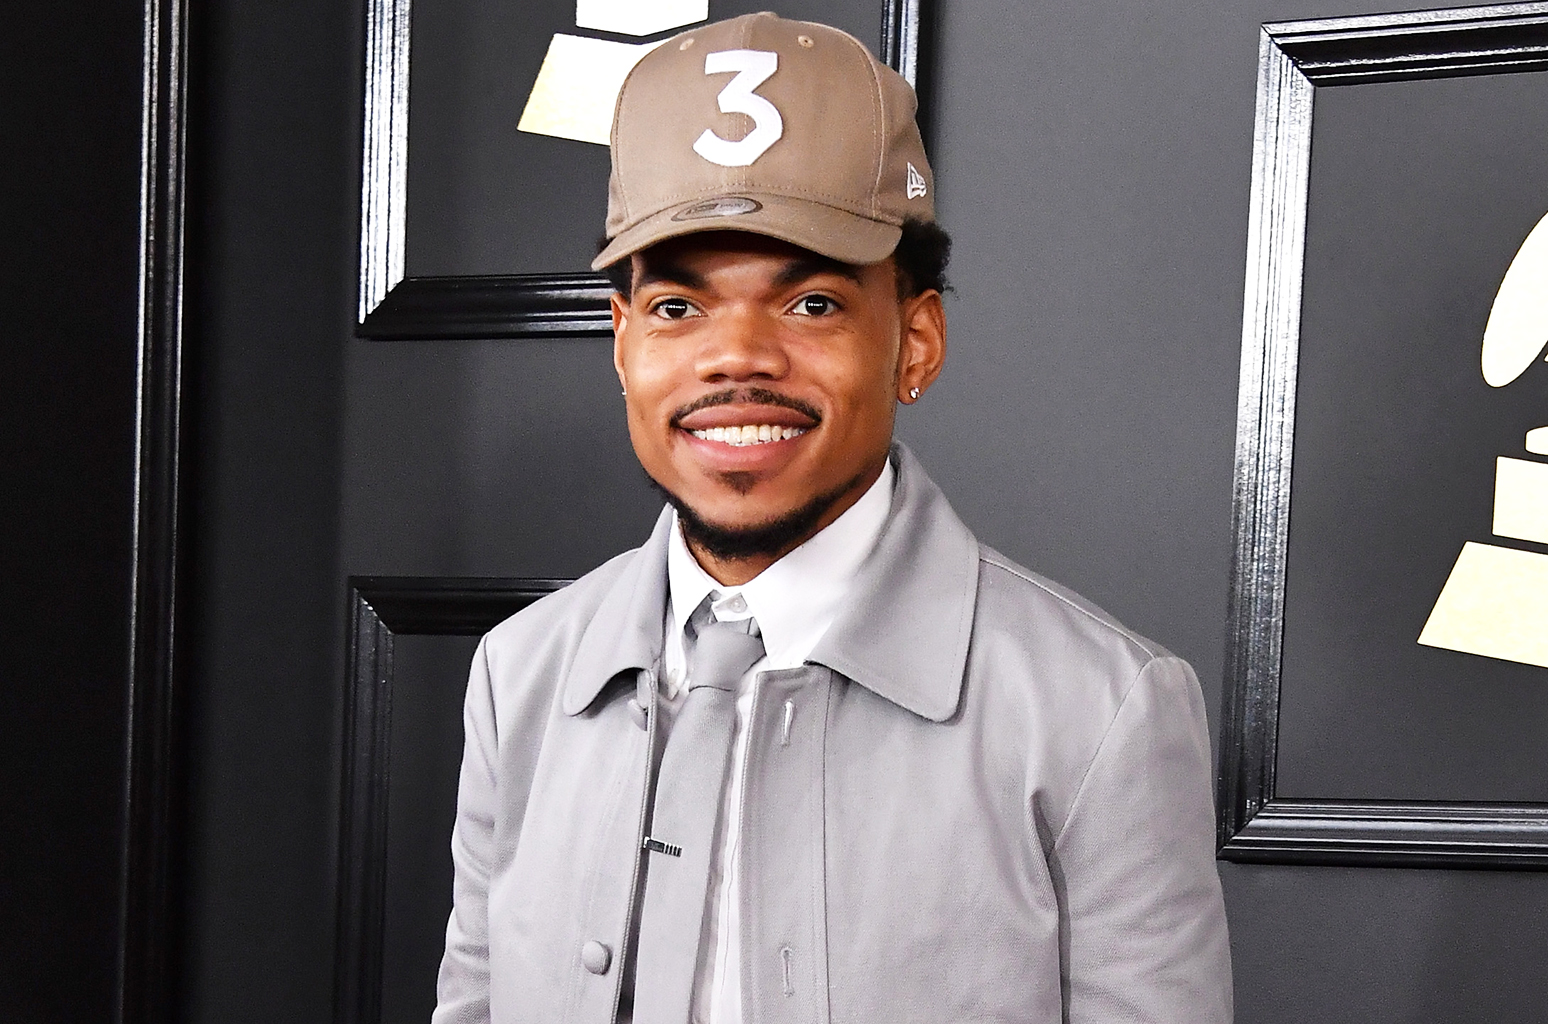 Chance The Rapper Receives $1 Million Dollar Donation for Chicago Public Schools From Super Market Chain